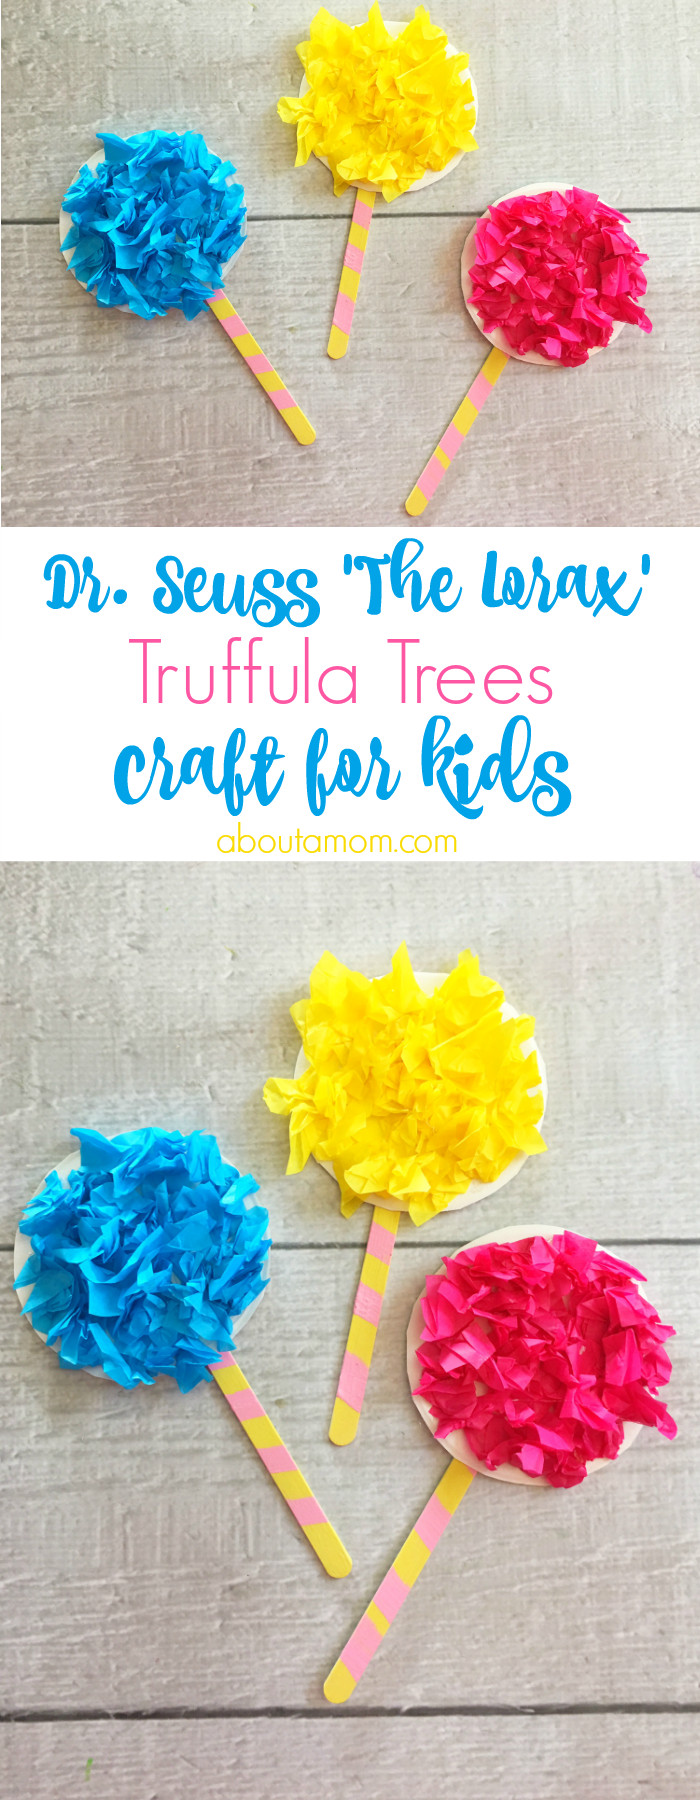 Dr Seuss Craft Ideas For Preschoolers  Truffula Trees Craft inspired by The Lorax